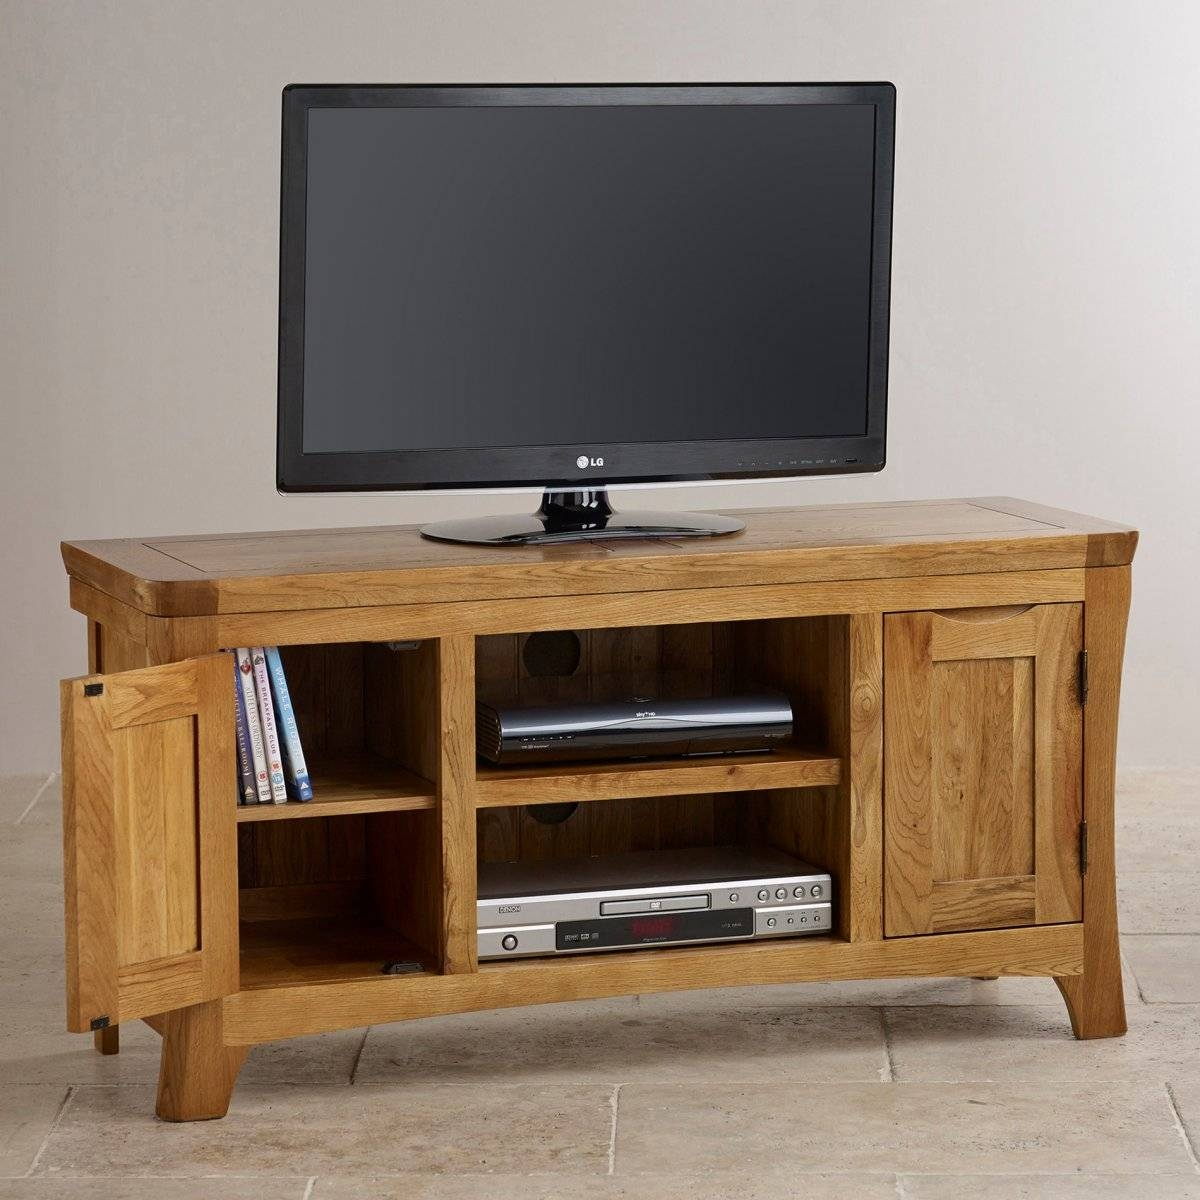 Orrick Wide Tv Cabinet In Rustic Solid Oak | Oak Furniture Land for Large Tv Cabinets (Image 13 of 15)